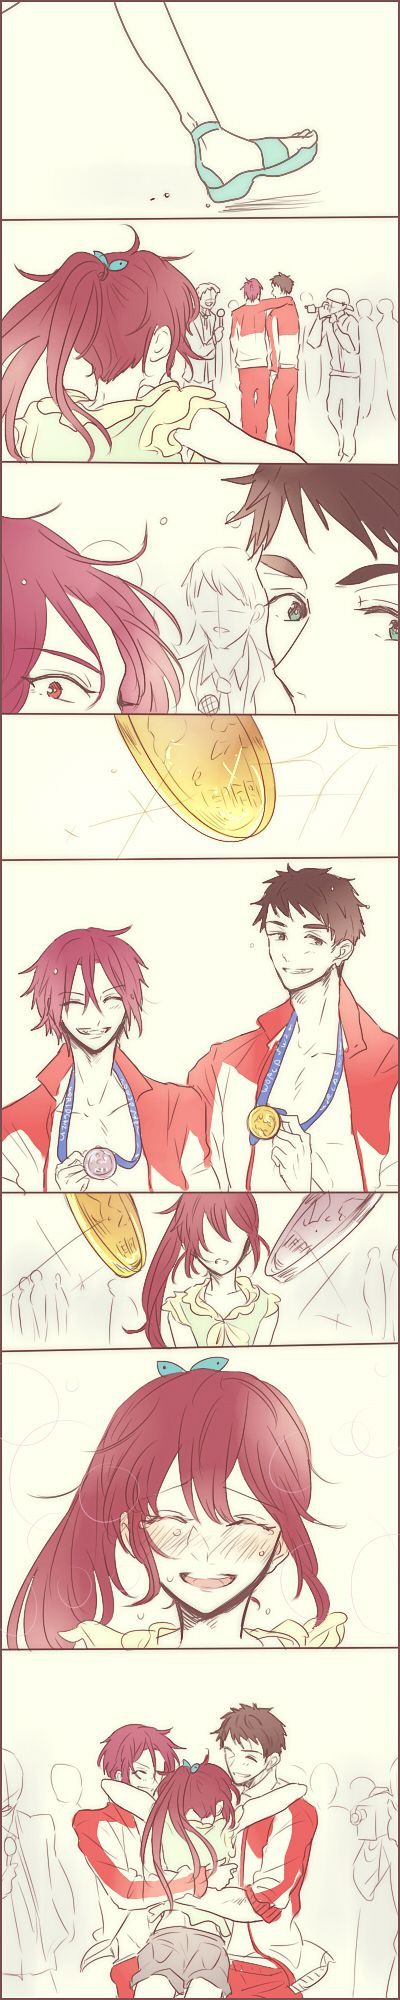 Rin x Gou x Sousuke <3 I love their  relationship so much and this is so touching <3 <3